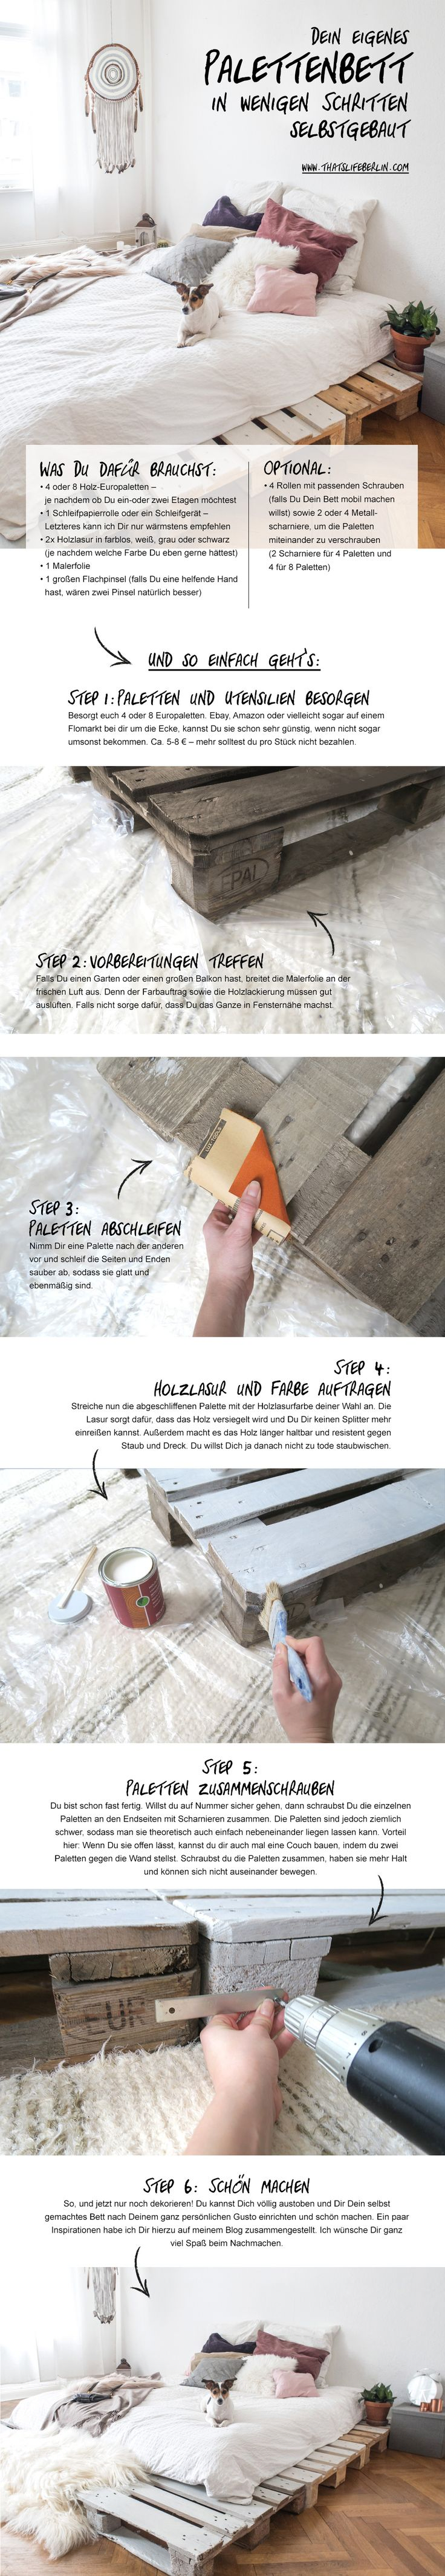 Dein eigenes Palettenbett in nur wenigen Schritten selbstgemacht! Make your own palett bed in only a few steps. #selfmade #easy #DIY Mehr findest Du auf: www.thatslifeberlin.com